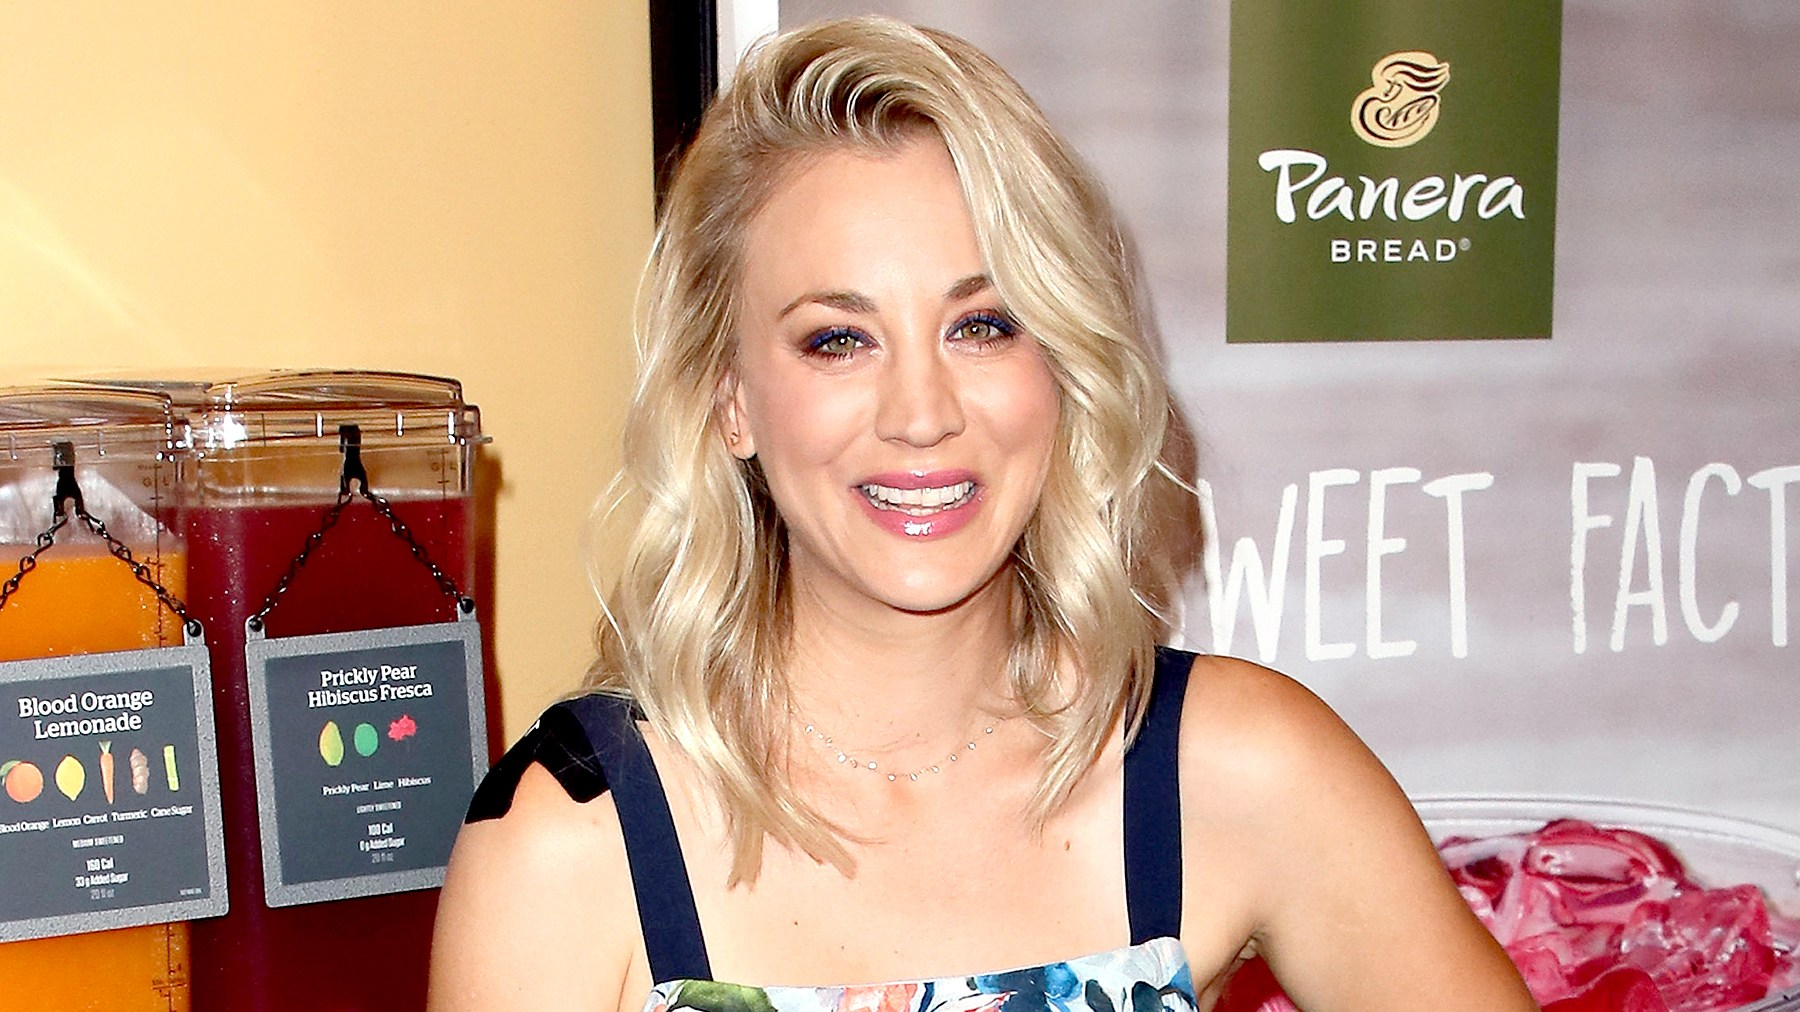 Kaley Cuoco joins Panera Bread to launch its new craft beverage station at Panera Bread on August 30, 2017 in Studio City, California.